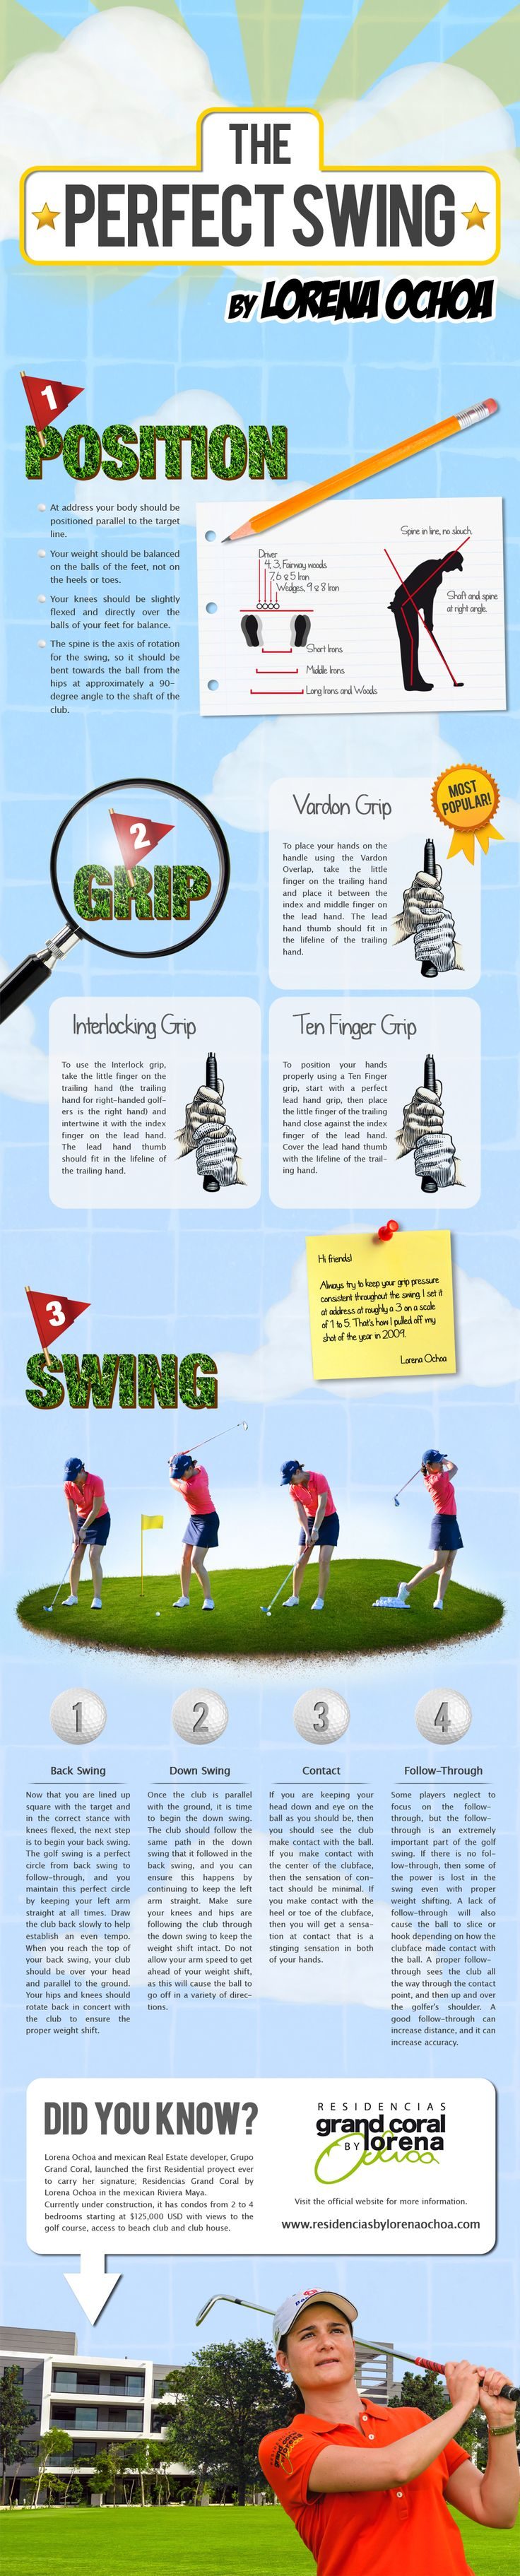 Master your Golf Swing with this step by step guide brought to you by the 3 times LPGA world champion, Lorena Ochoa.